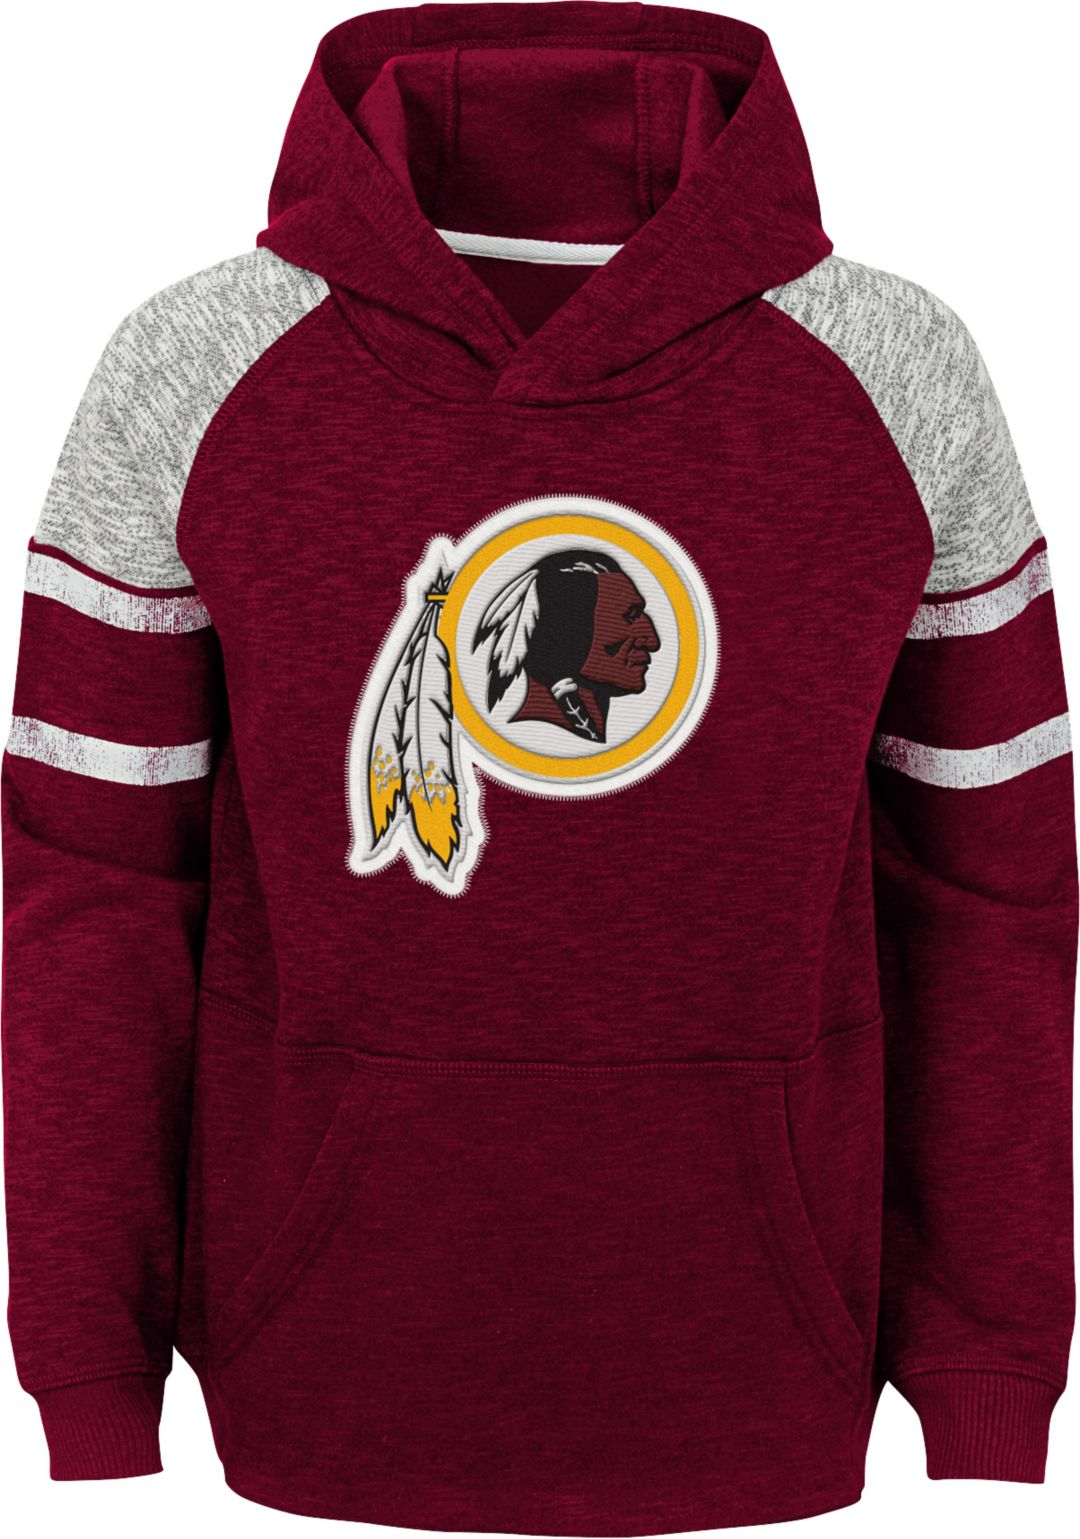 10d8114f NFL Team Apparel Youth Washington Redskins Linebacker Red Pullover Hoodie |  DICK'S Sporting Goods